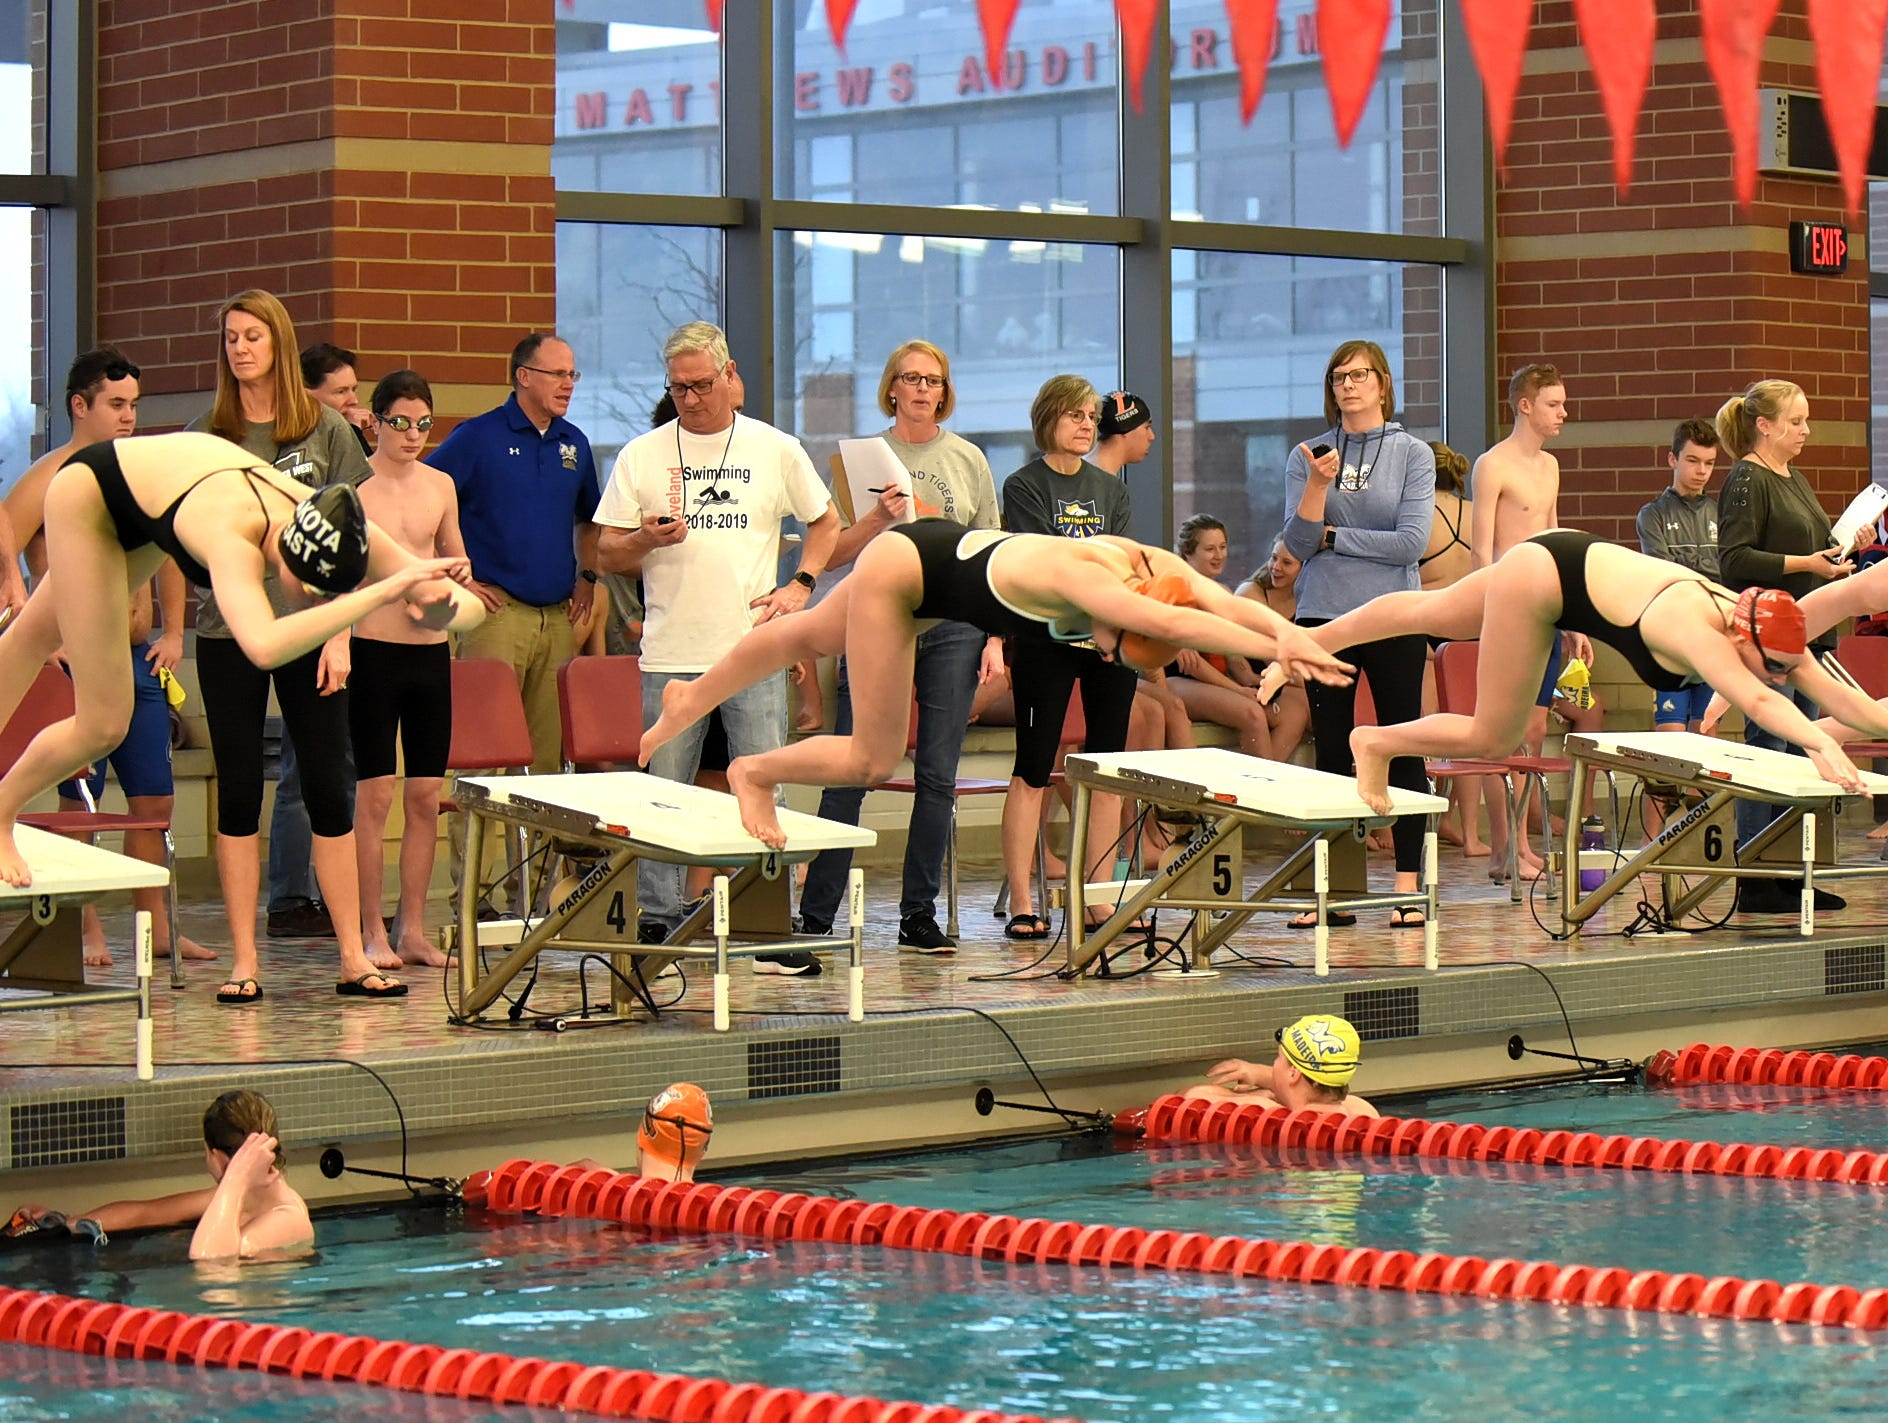 Ladies leave their marks at Princeton in the 200 freestyle at the Southwest Ohio Swimming and Diving Classic, January 19, 2019.